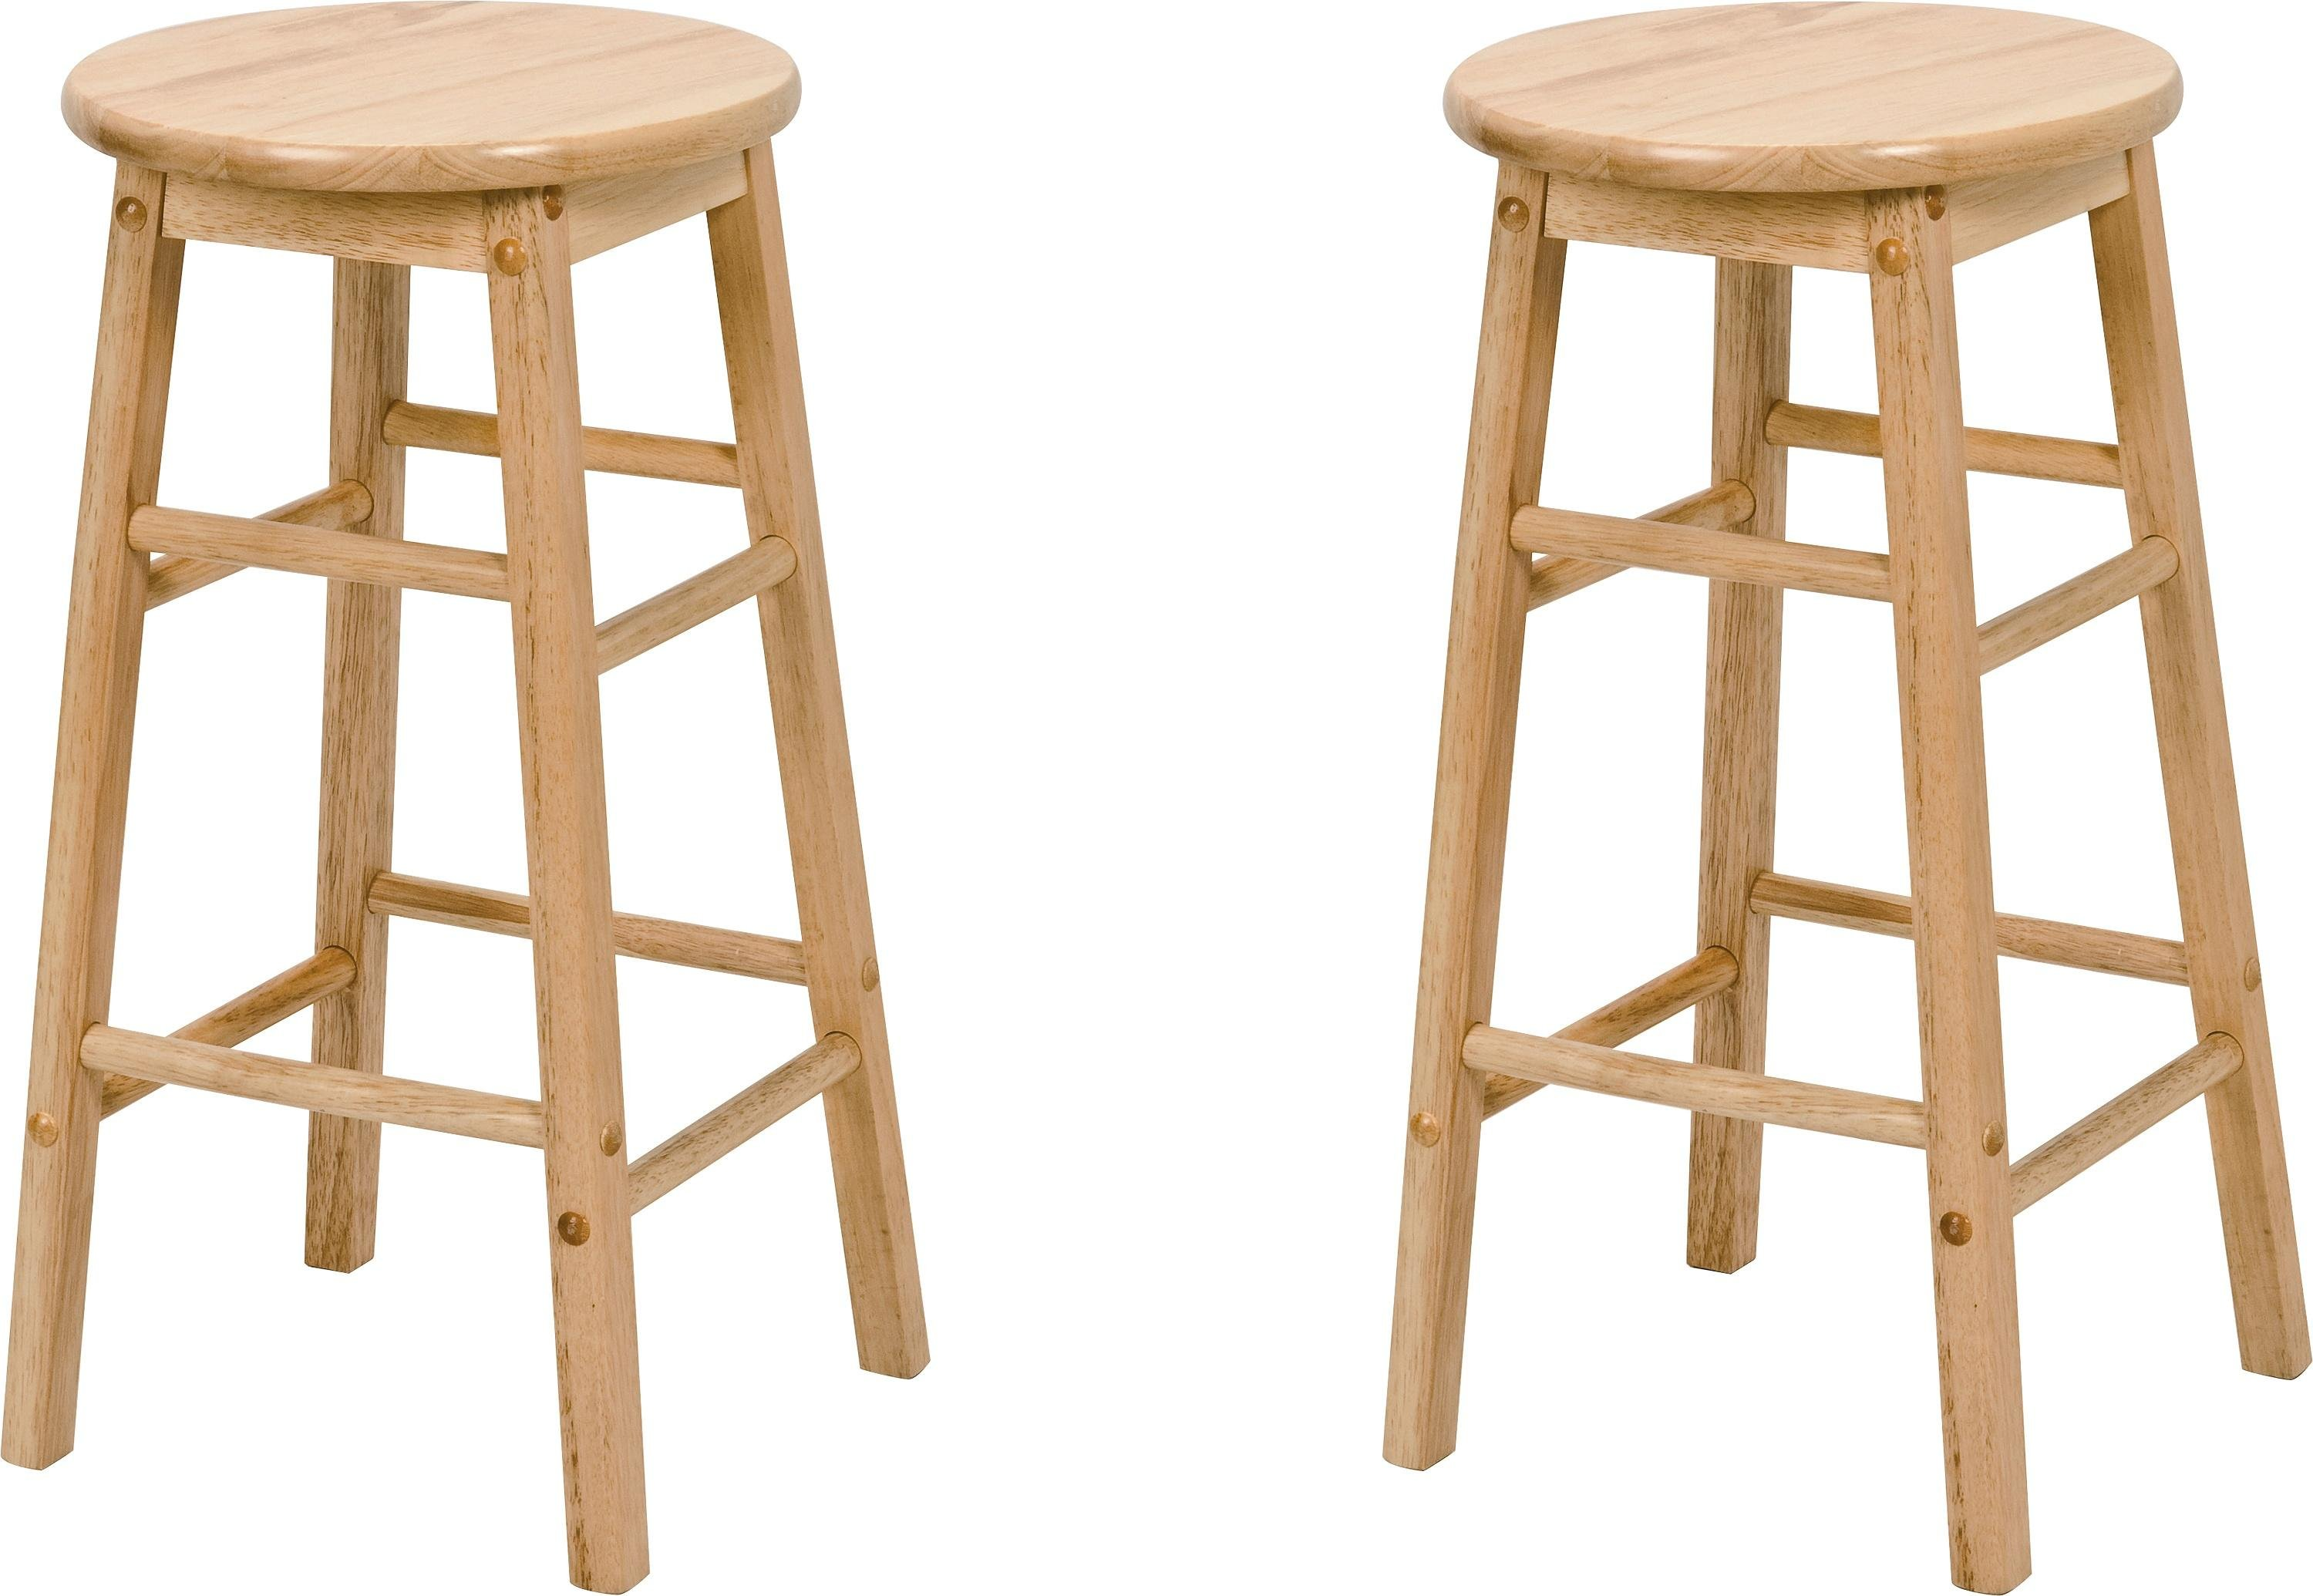 Buy Simple Value Pair Of Solid Wood Kitchen Stools Bar